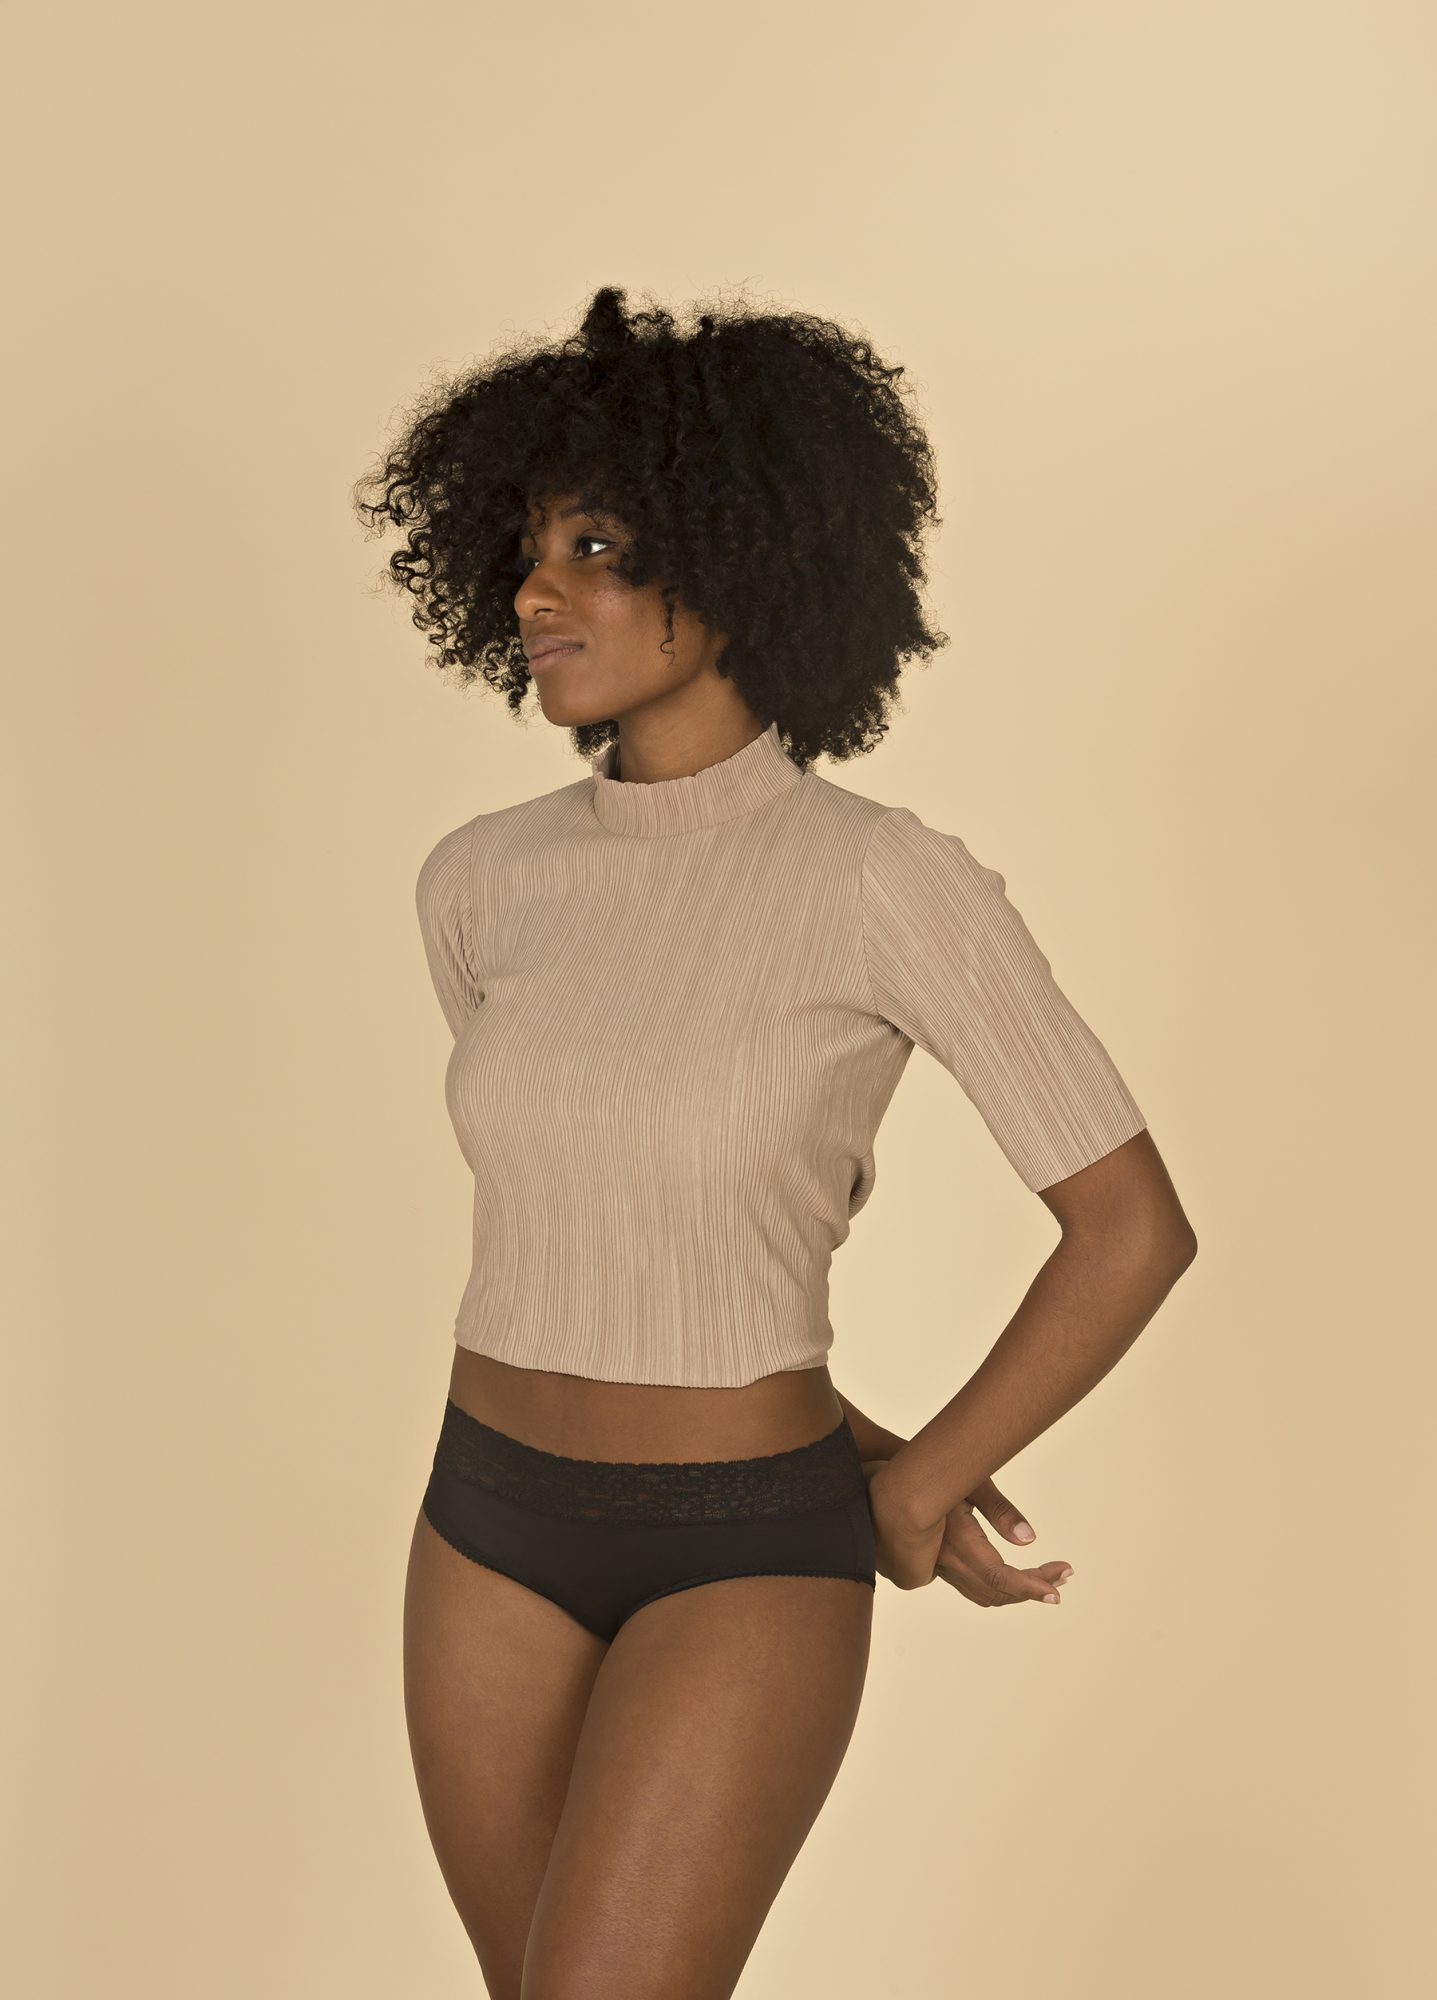 cafec38a27f Do Thinx  Period-Proof  Underwear Actually Work  - Health